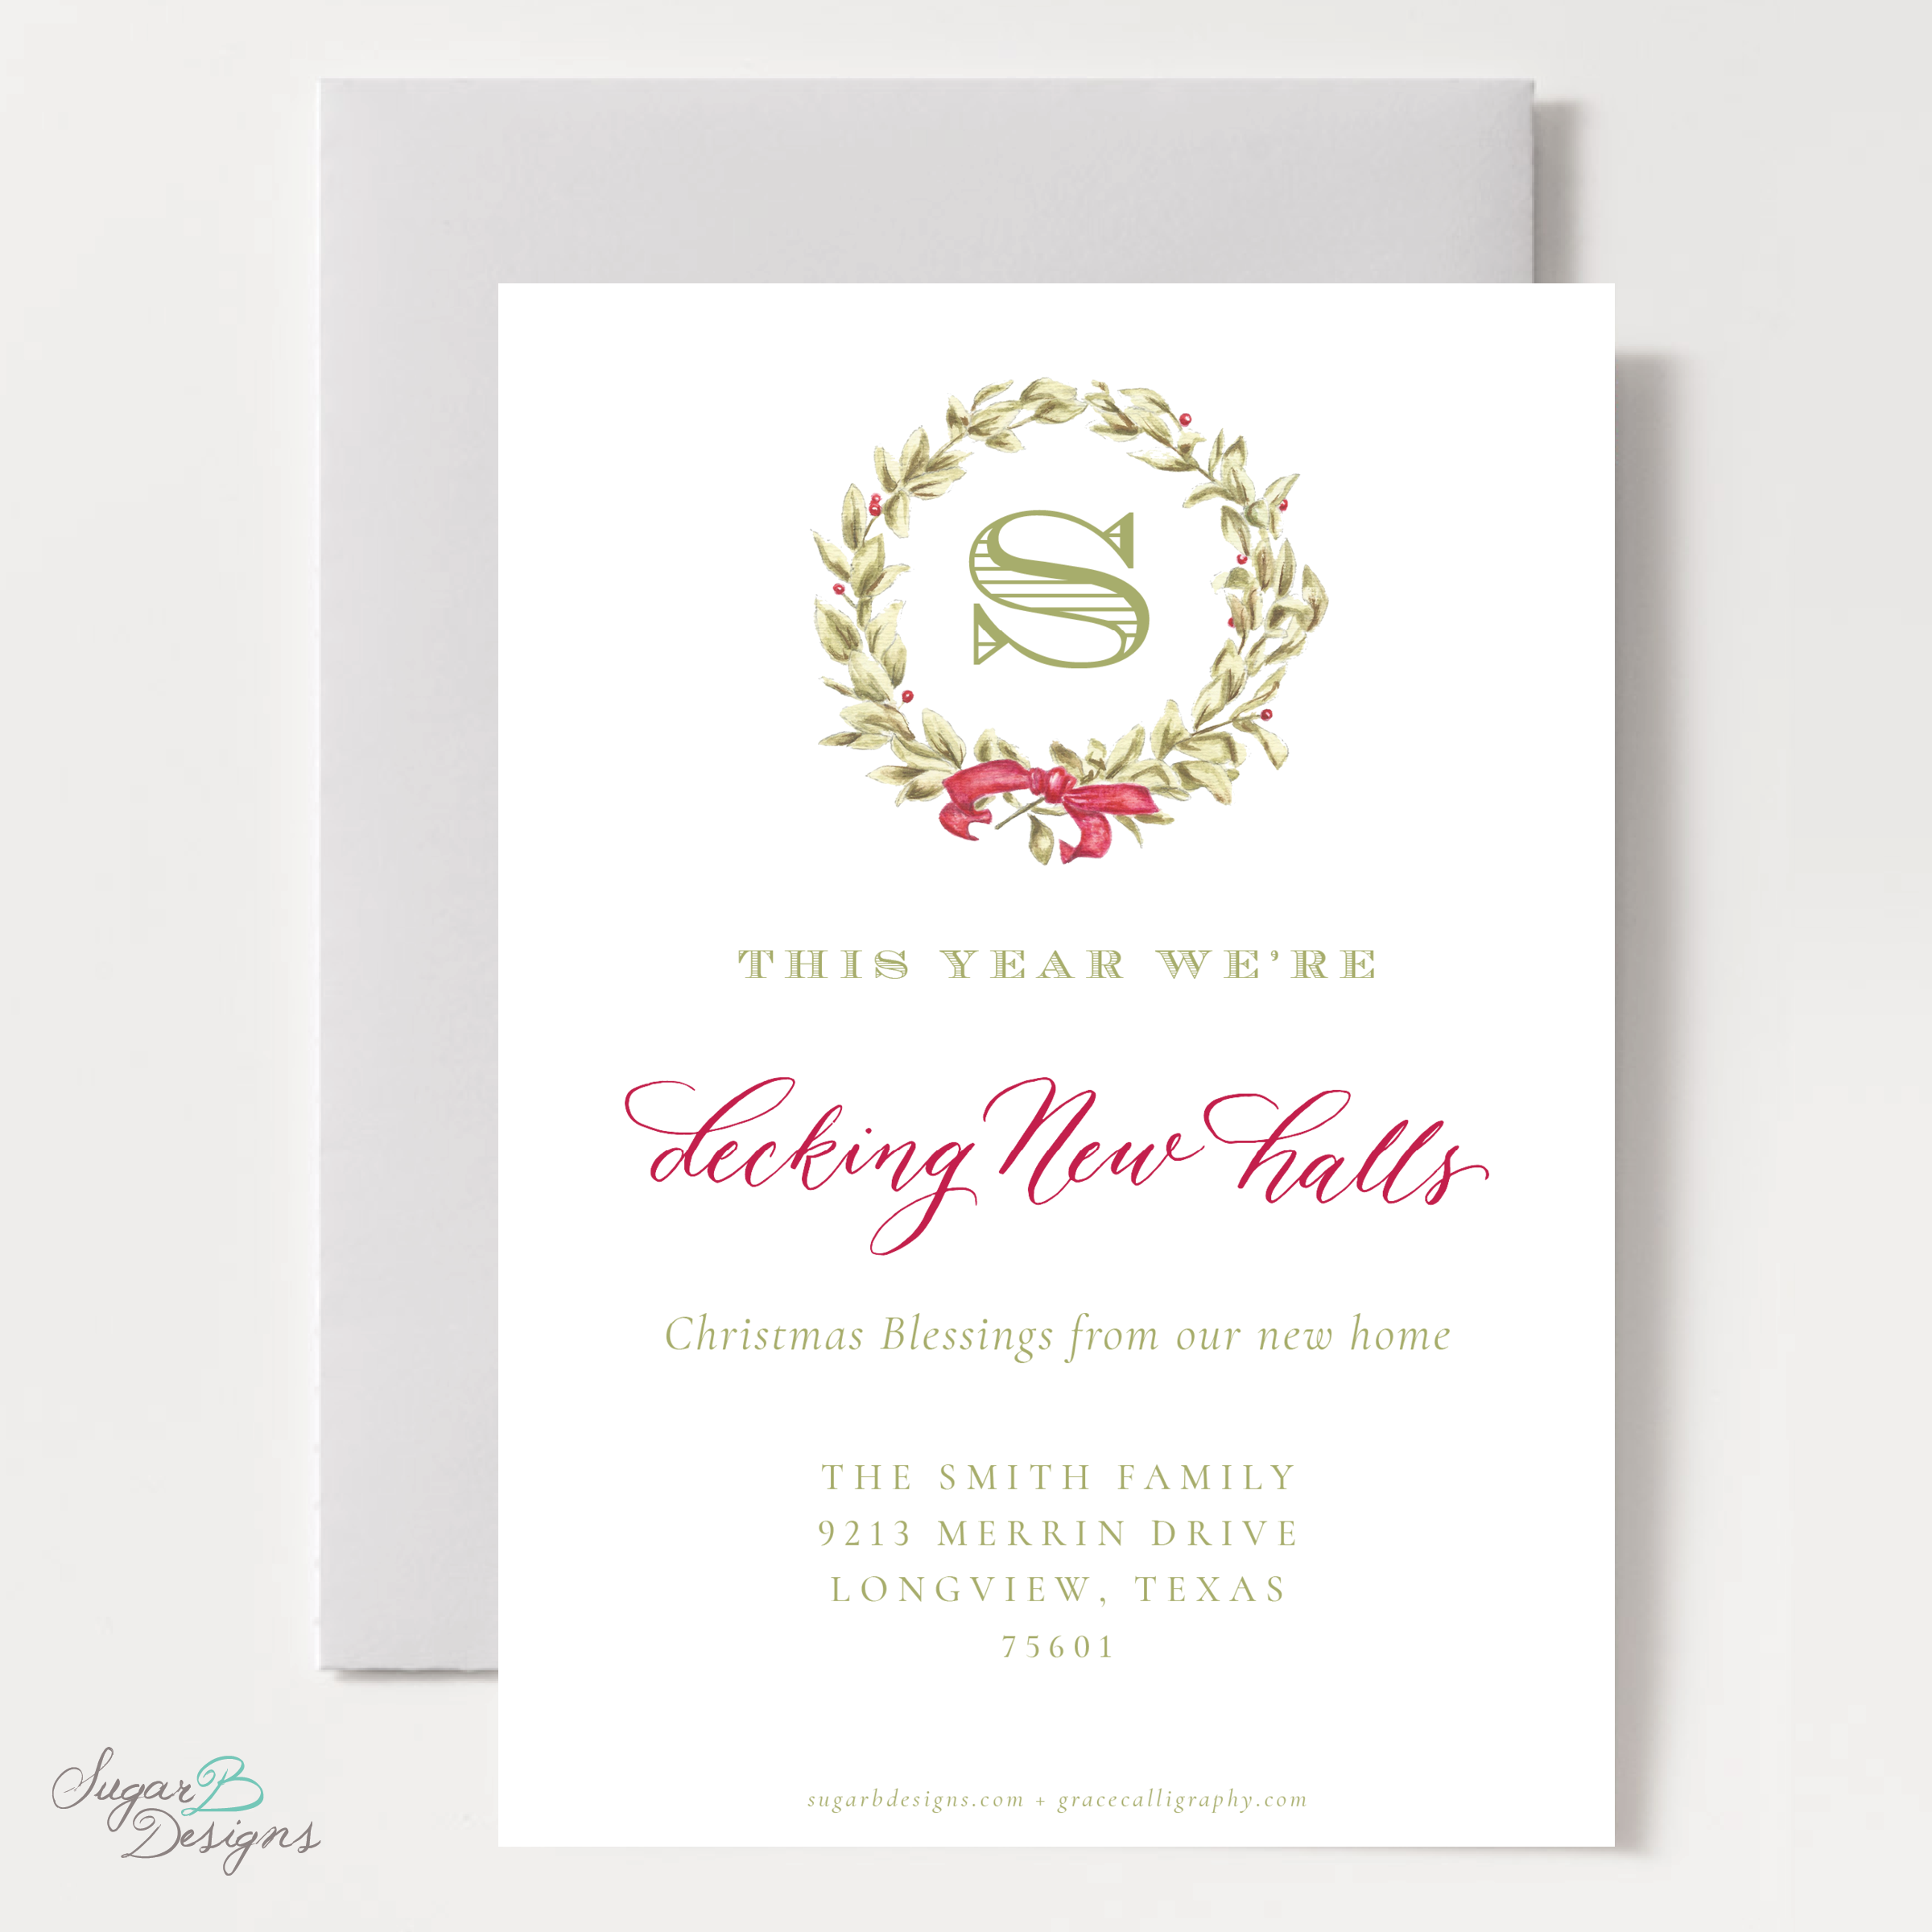 Meryl Wreath Red Moving Christmas Card back by Sugar B Designs.png